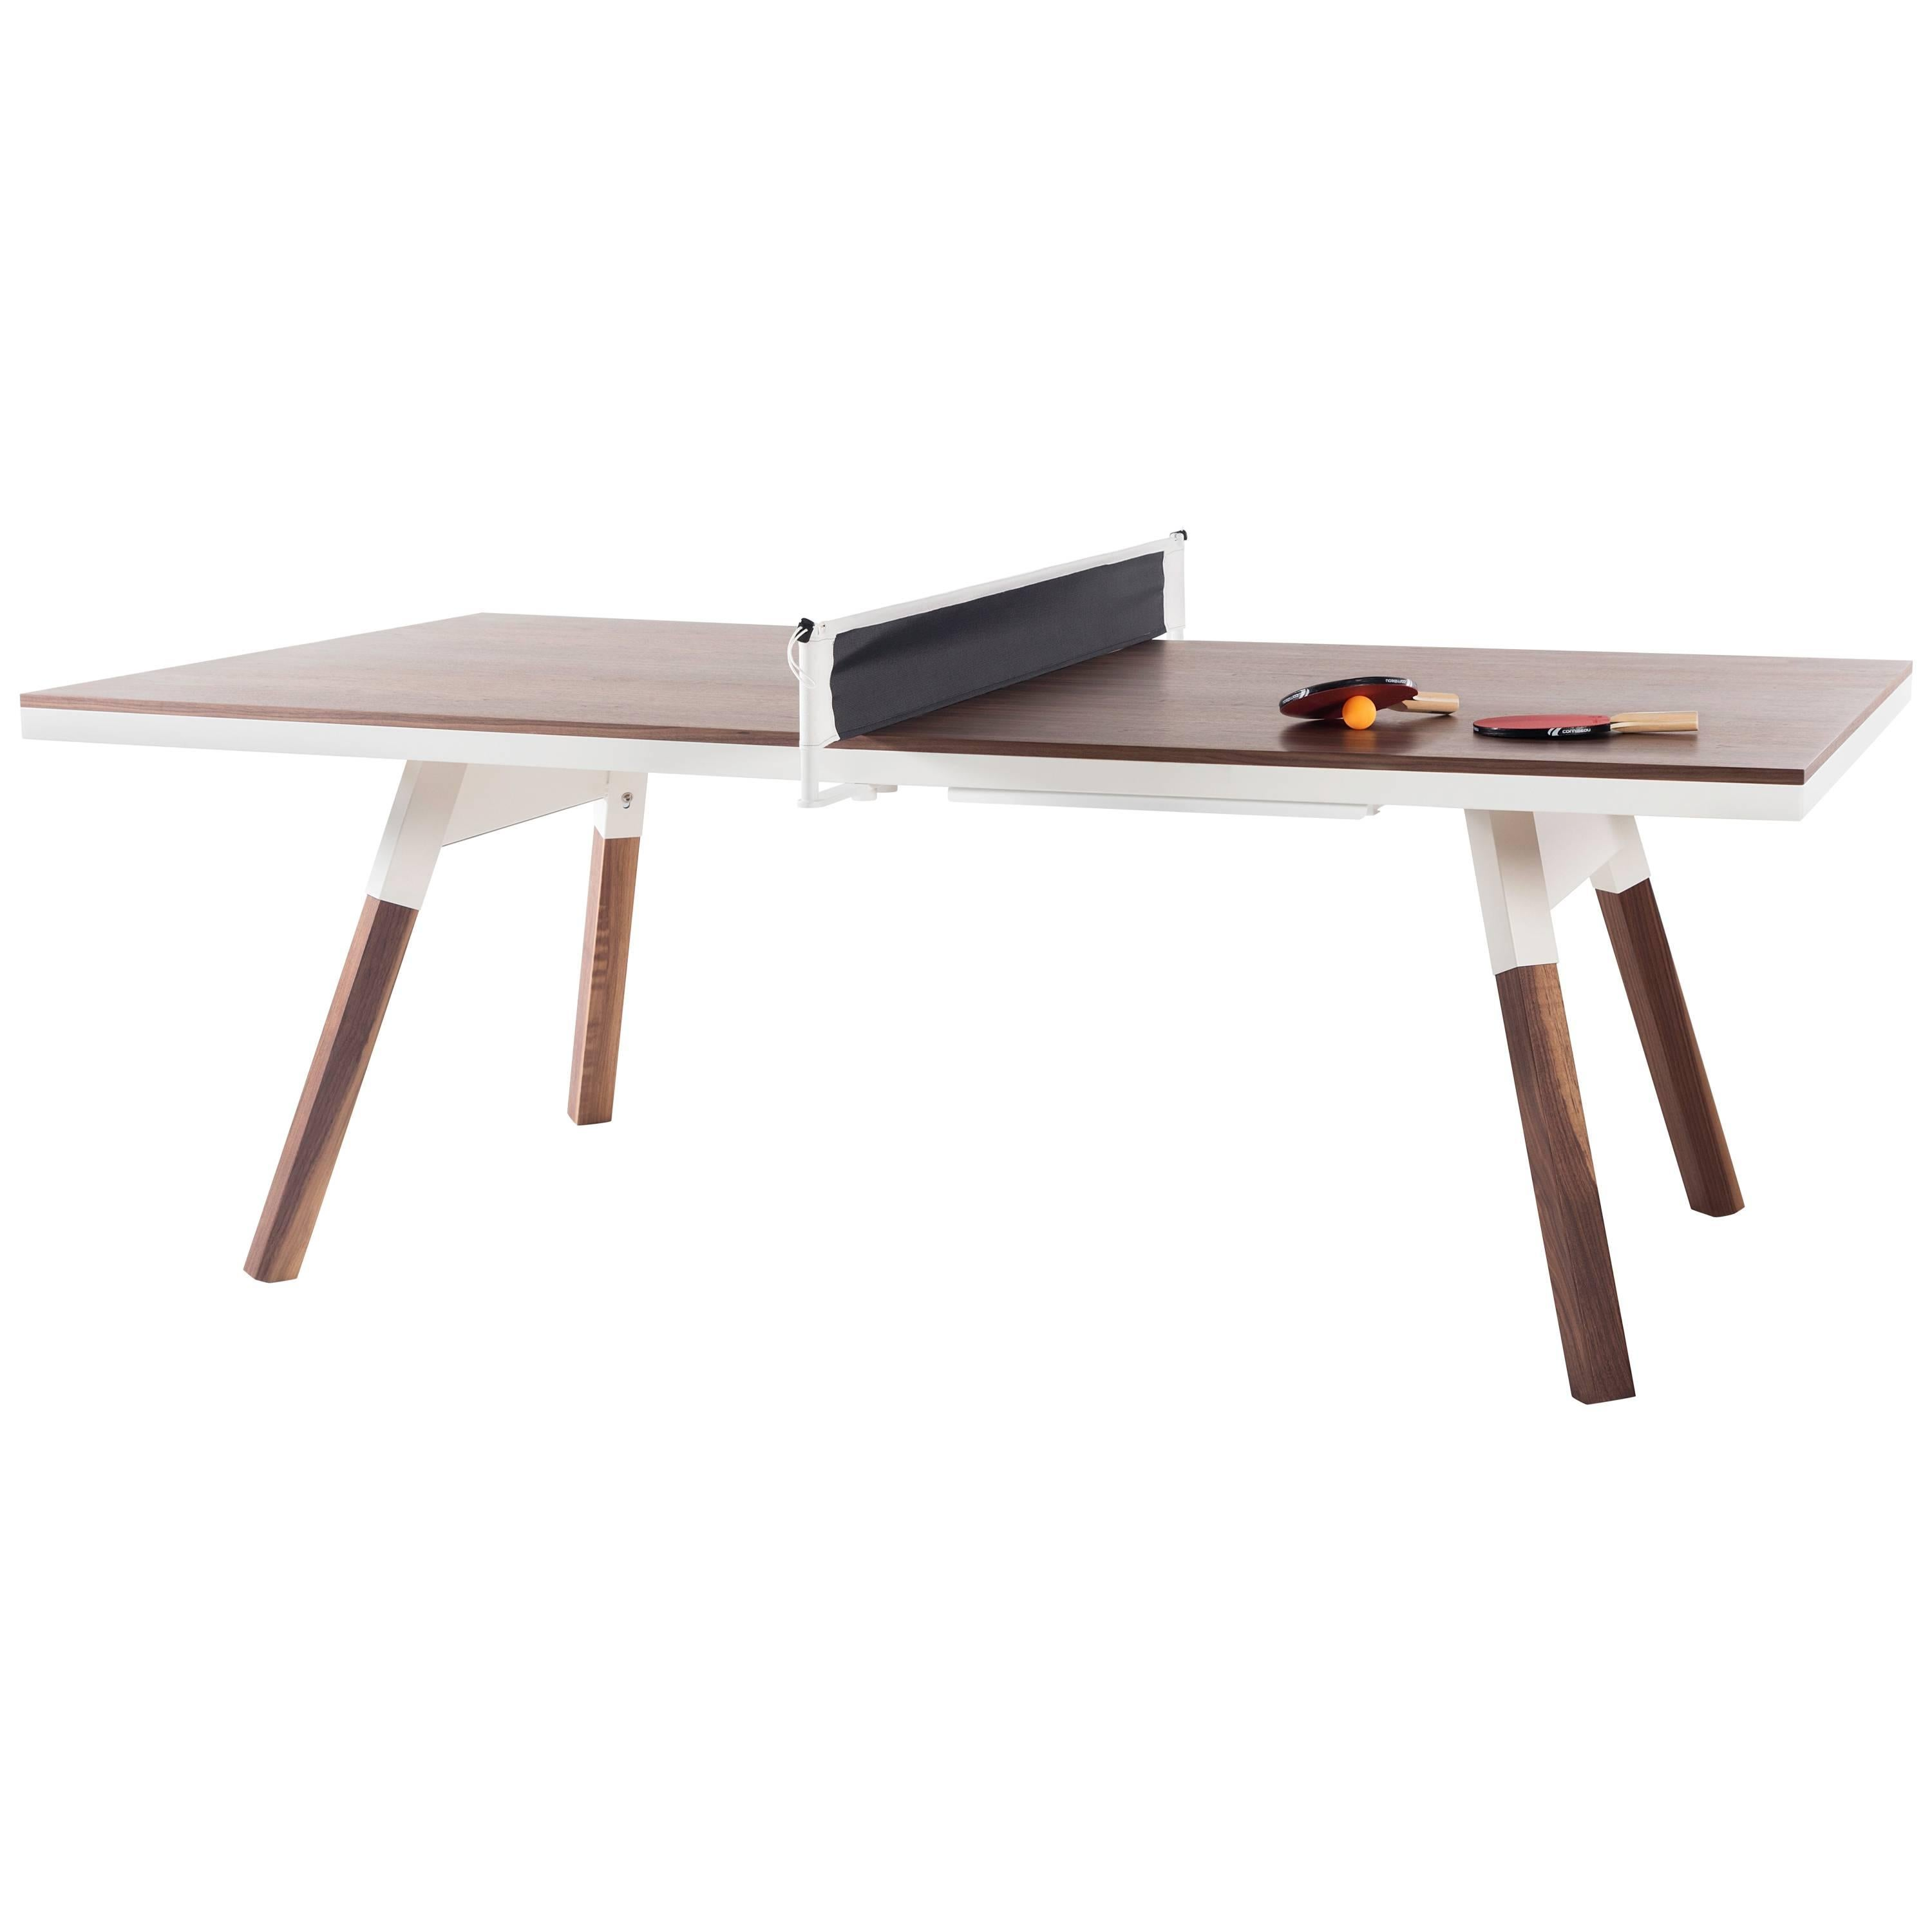 You & Me Wooden Top 220 Ping Pong Table in Walnut and White by RS Barcelona